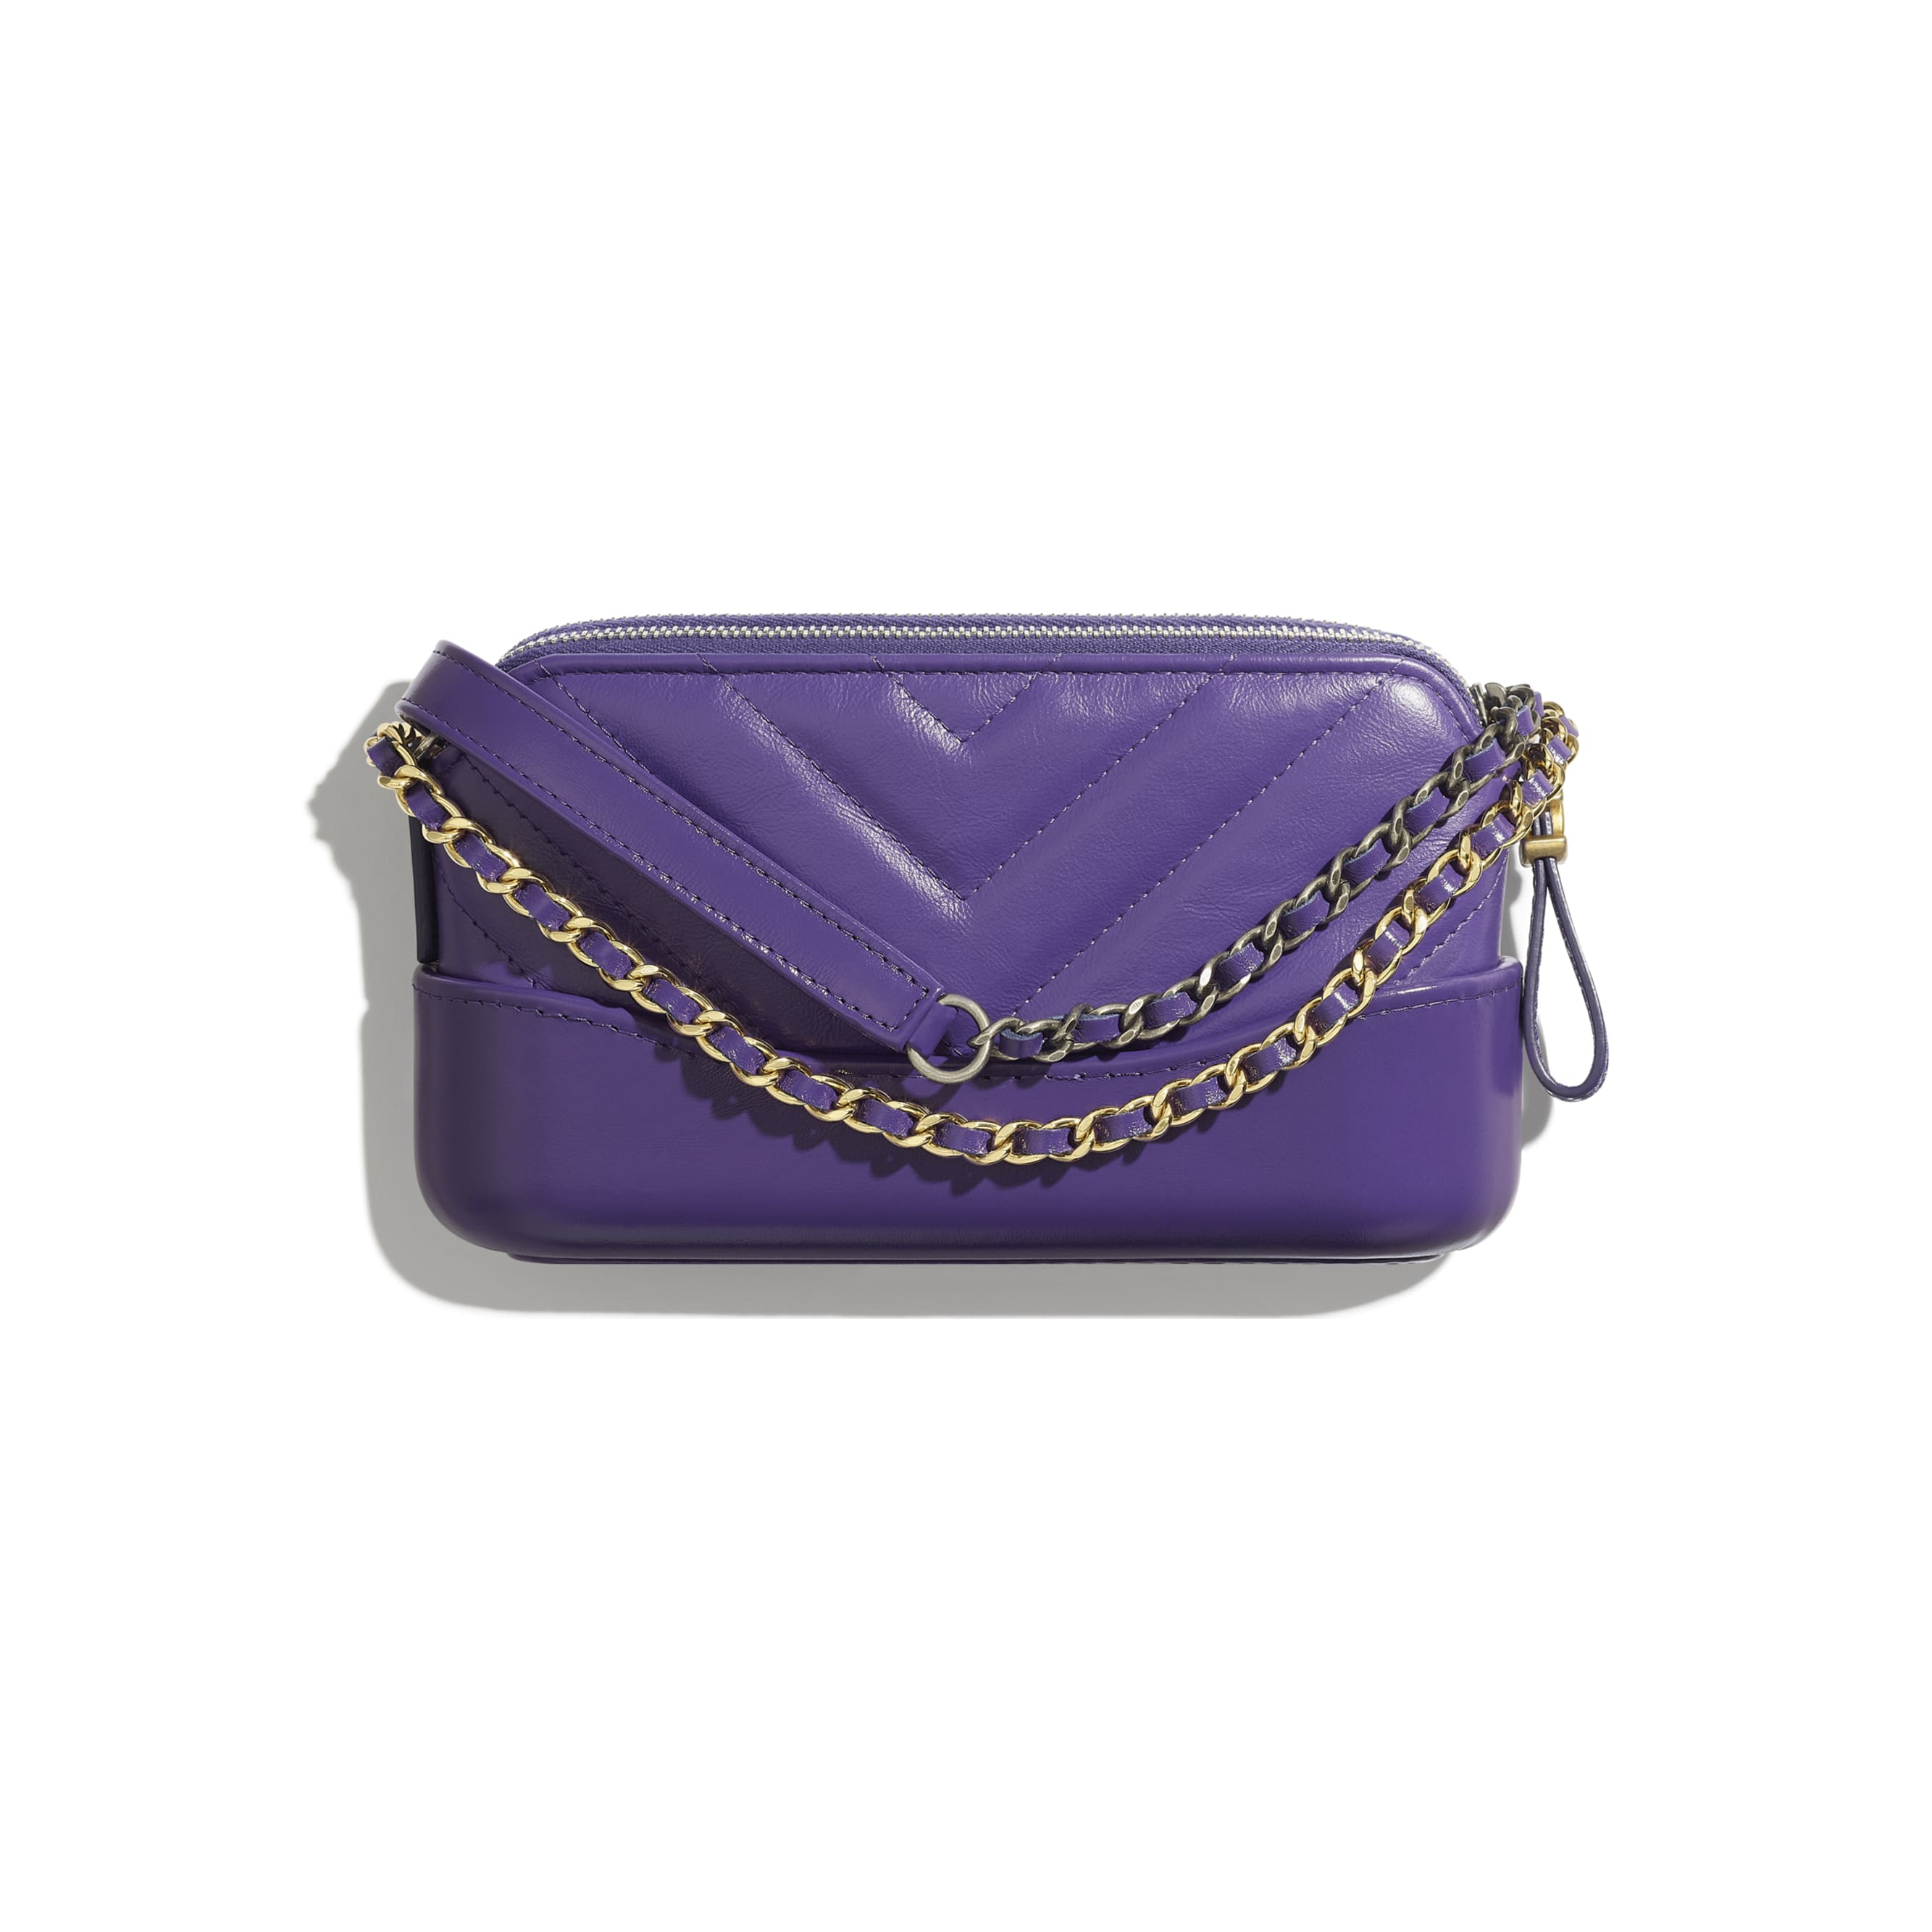 Clutch With Chain - Purple - Aged Calfskin, Smooth Calfskin, Gold-Tone, Silver-Tone & Ruthenium-Finish Metal - CHANEL - Alternative view - see standard sized version